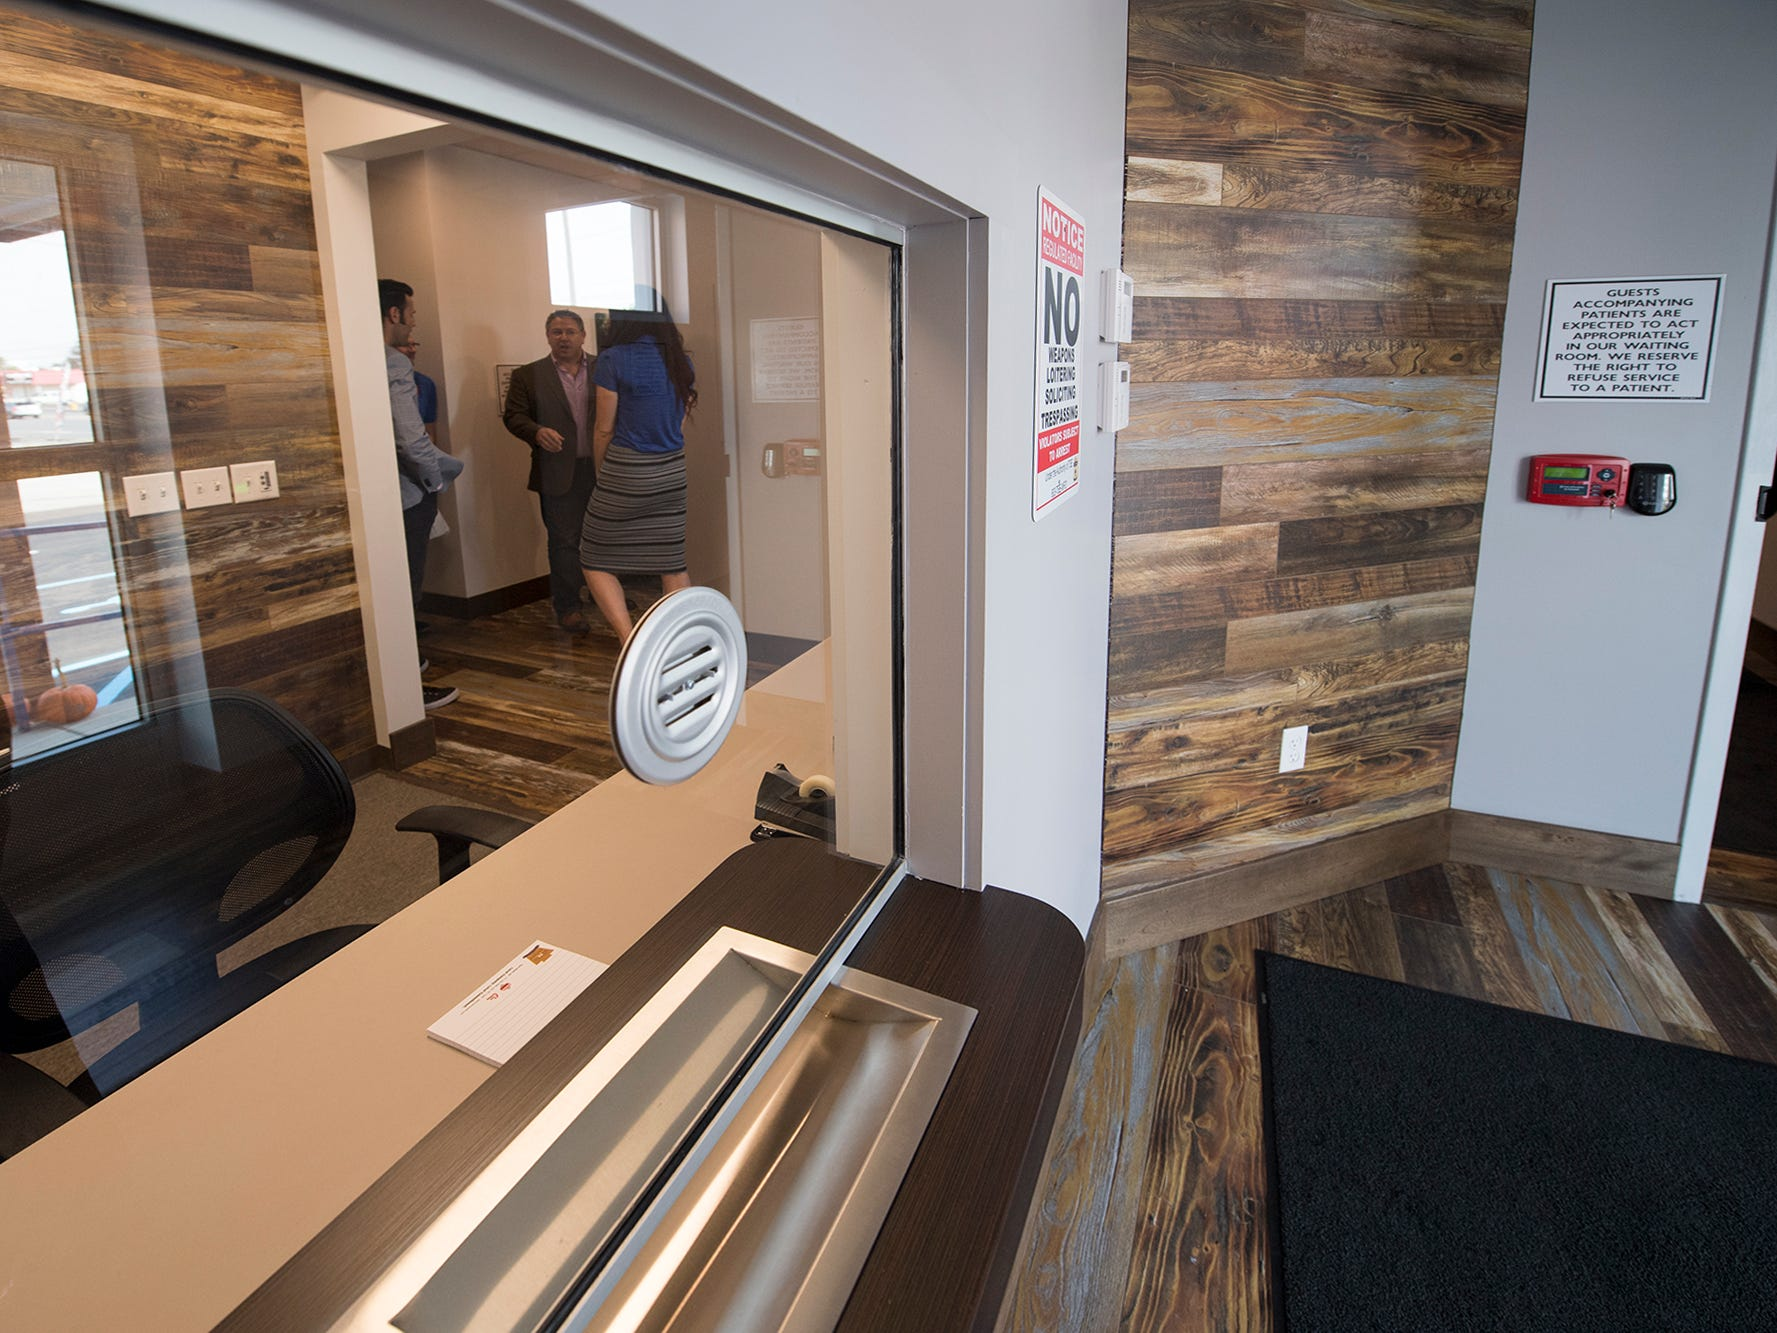 After a customer is buzzed in using a video intercom the talk to a receptionist behind glass before they are allowed to enter the waiting room at the Rise medical marijuana dispensary in West Manchester Township.